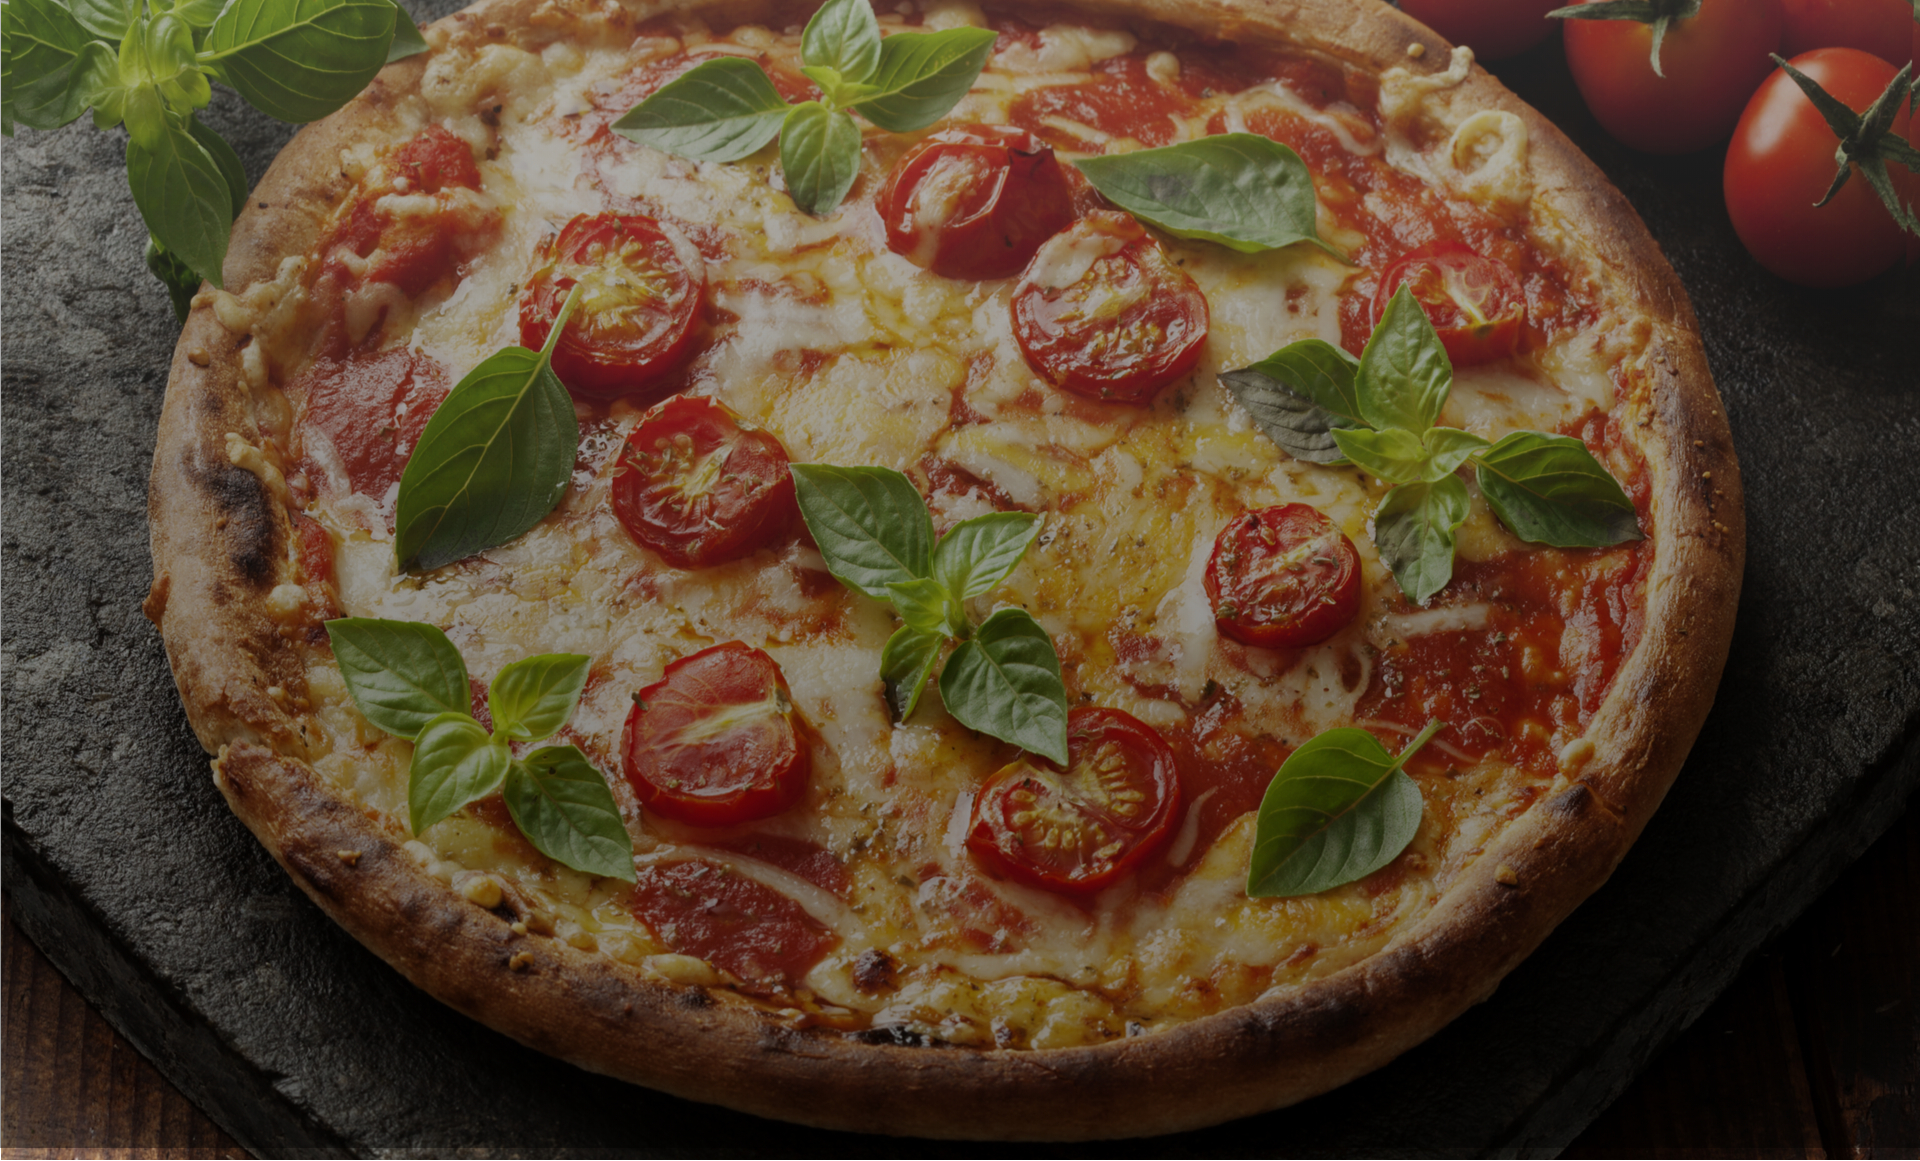 Grub24 Get Amazing Food From Official No1 Pizza